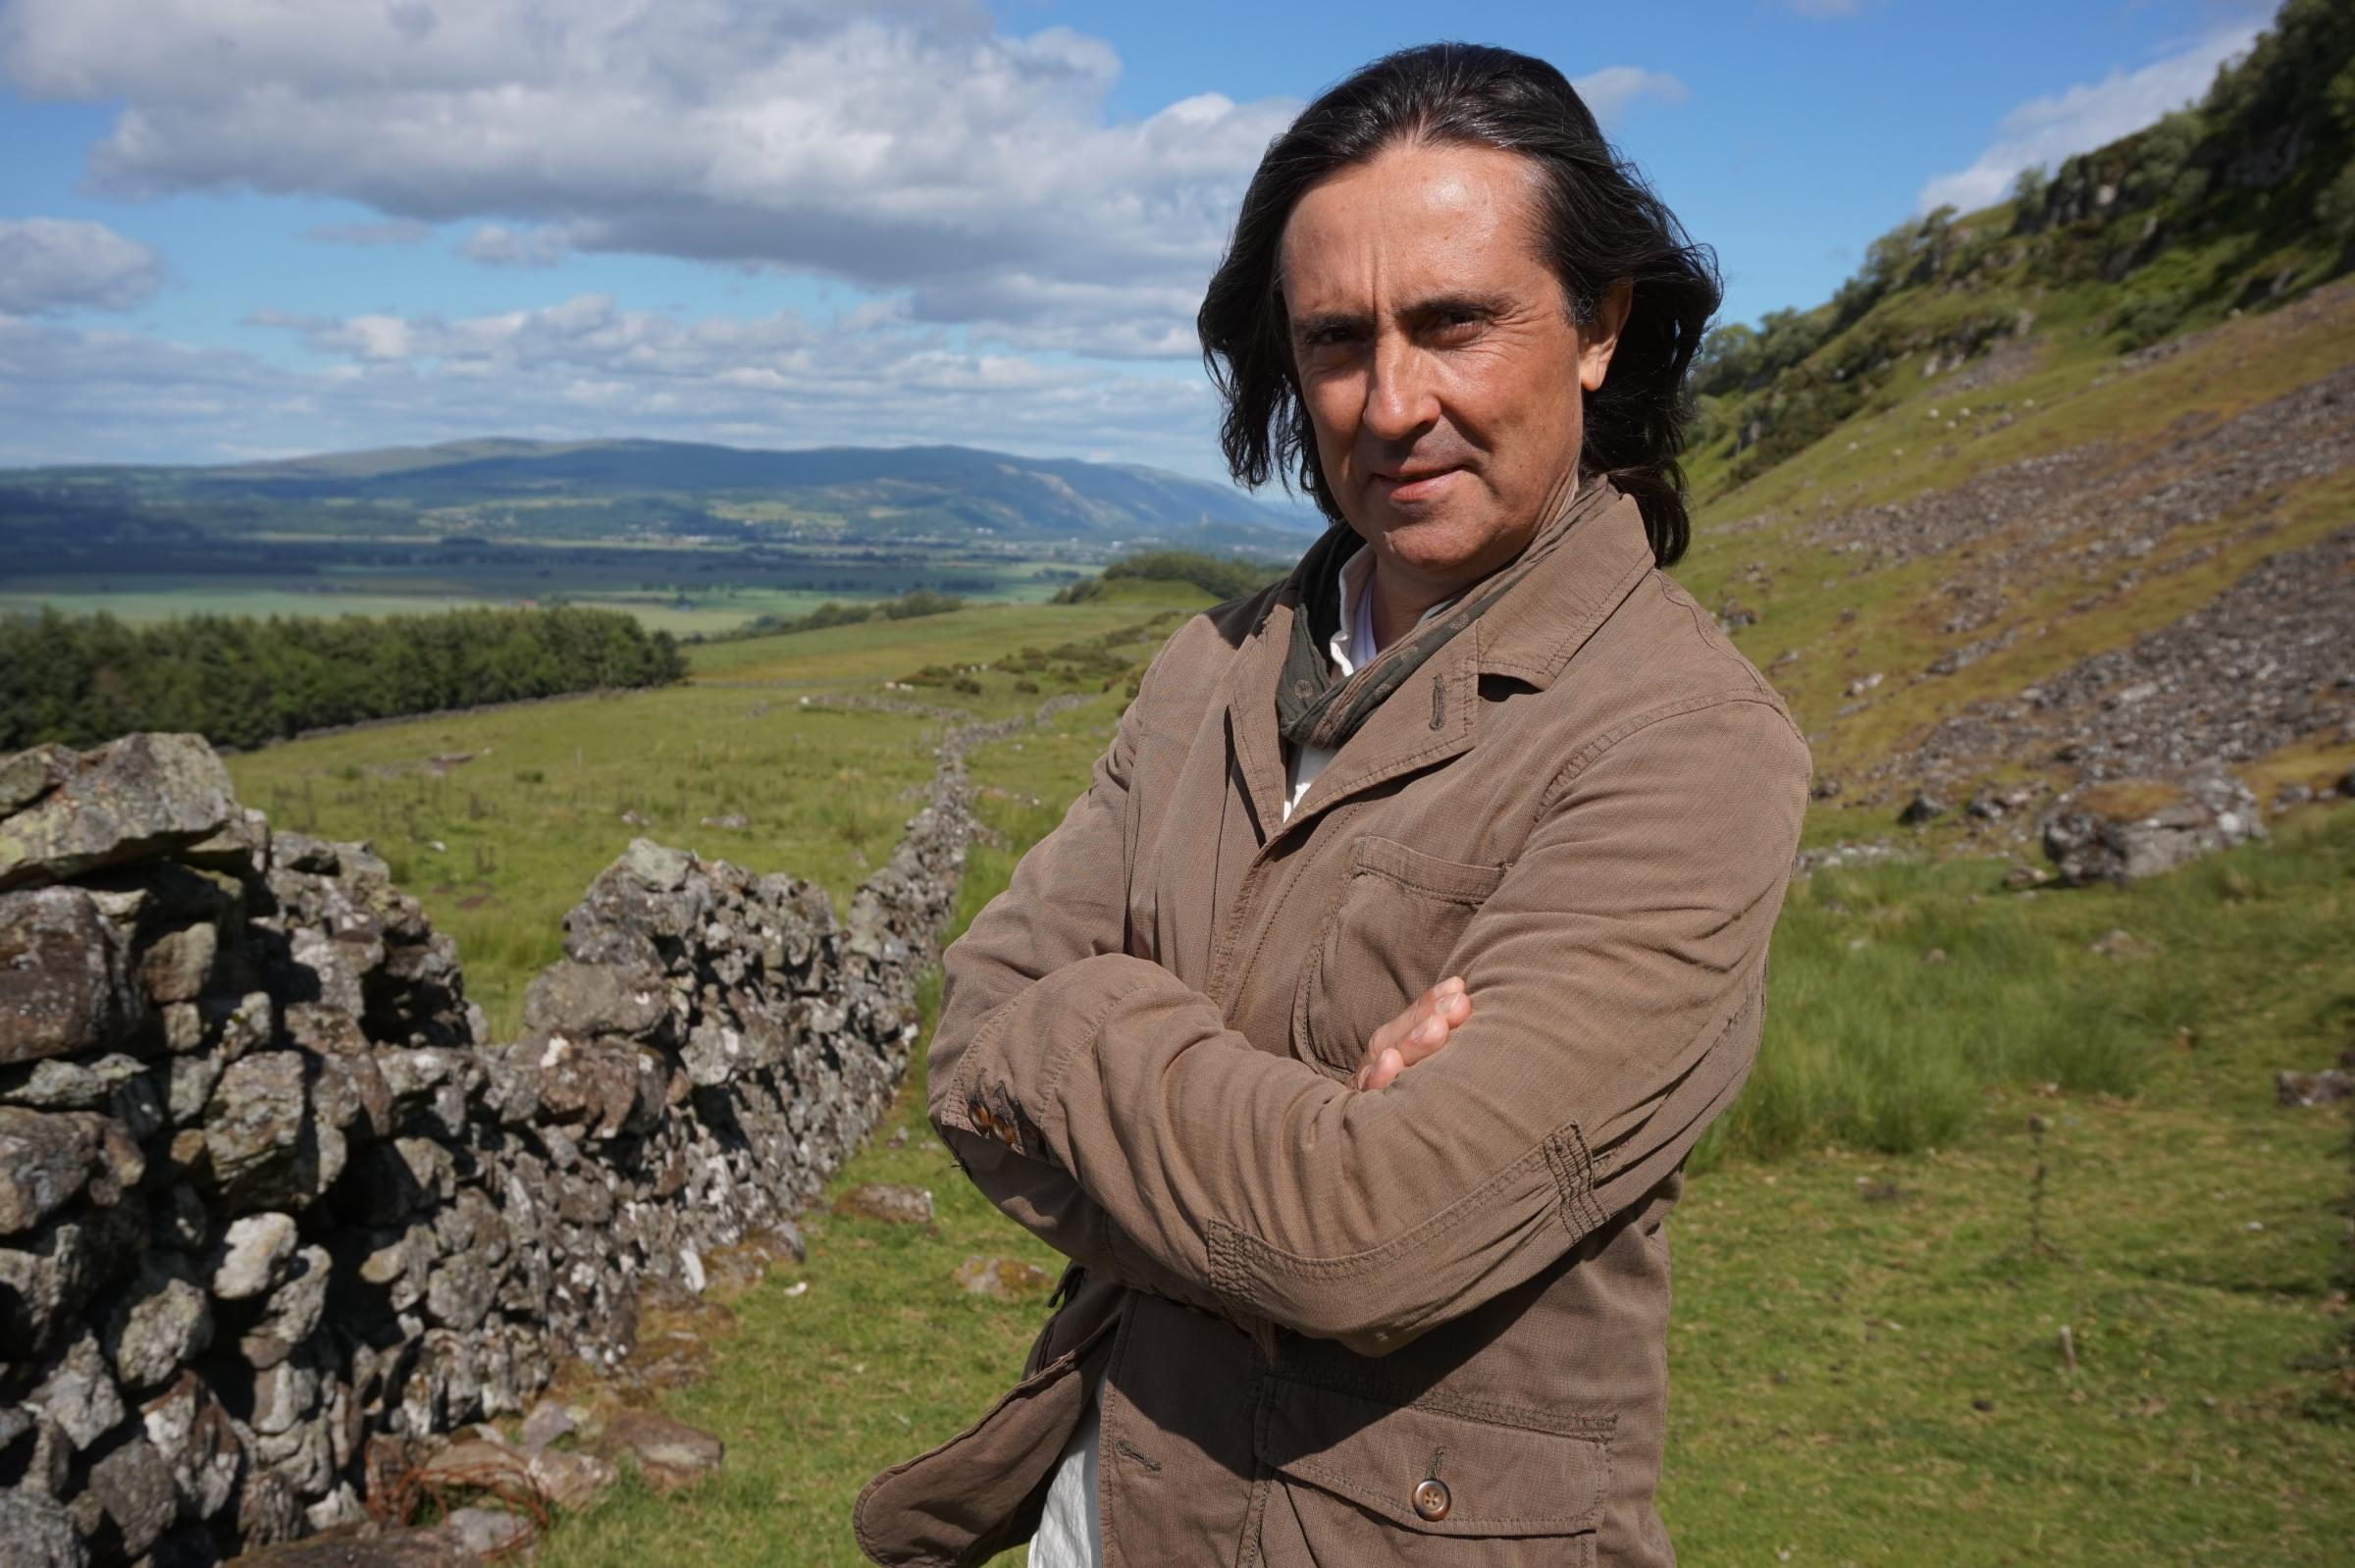 Neil Oliver's appointment as president of the National Trust for Scotland caused controversy